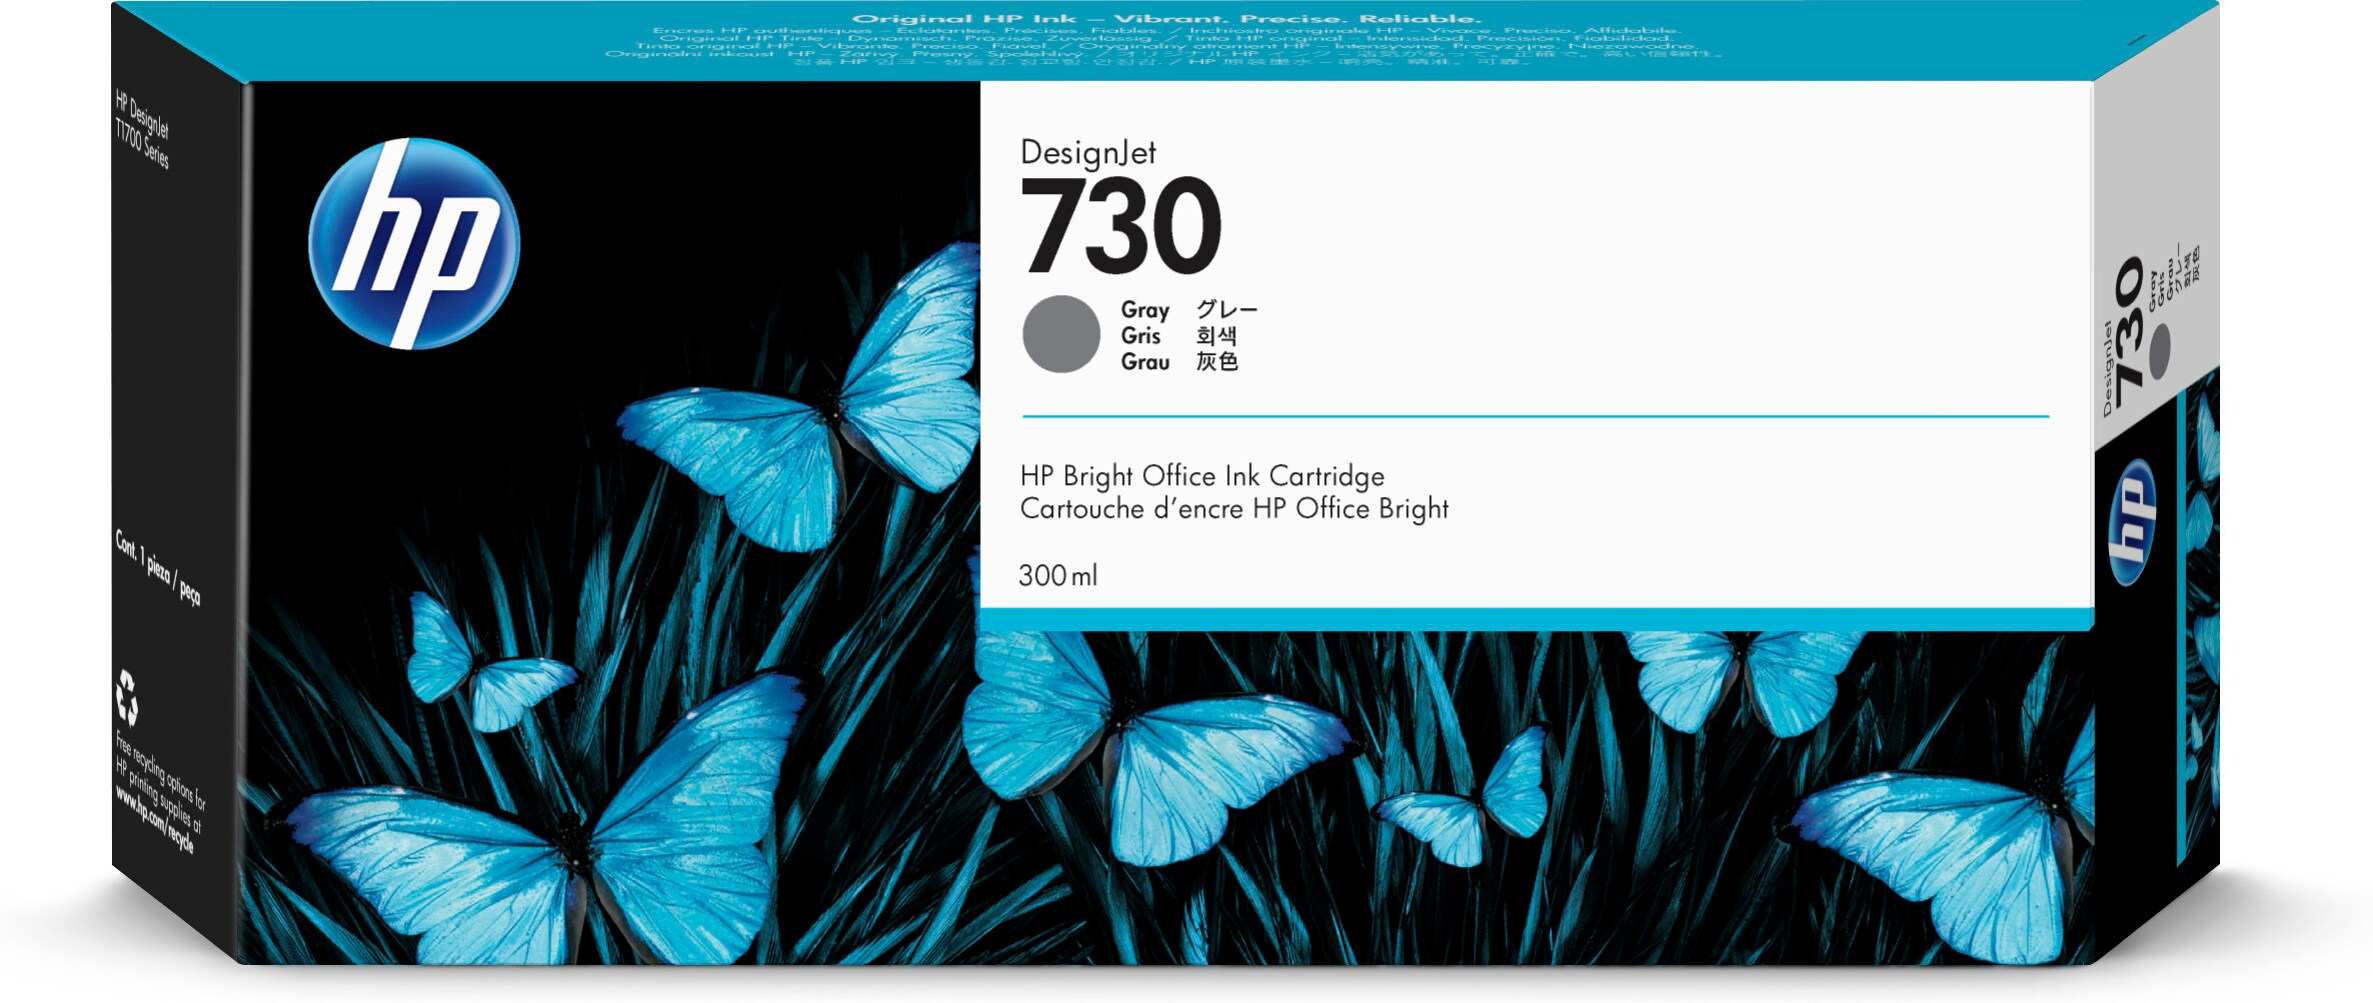 HP No. 730 Ink Cartridge Grey - 300ml P2v72a